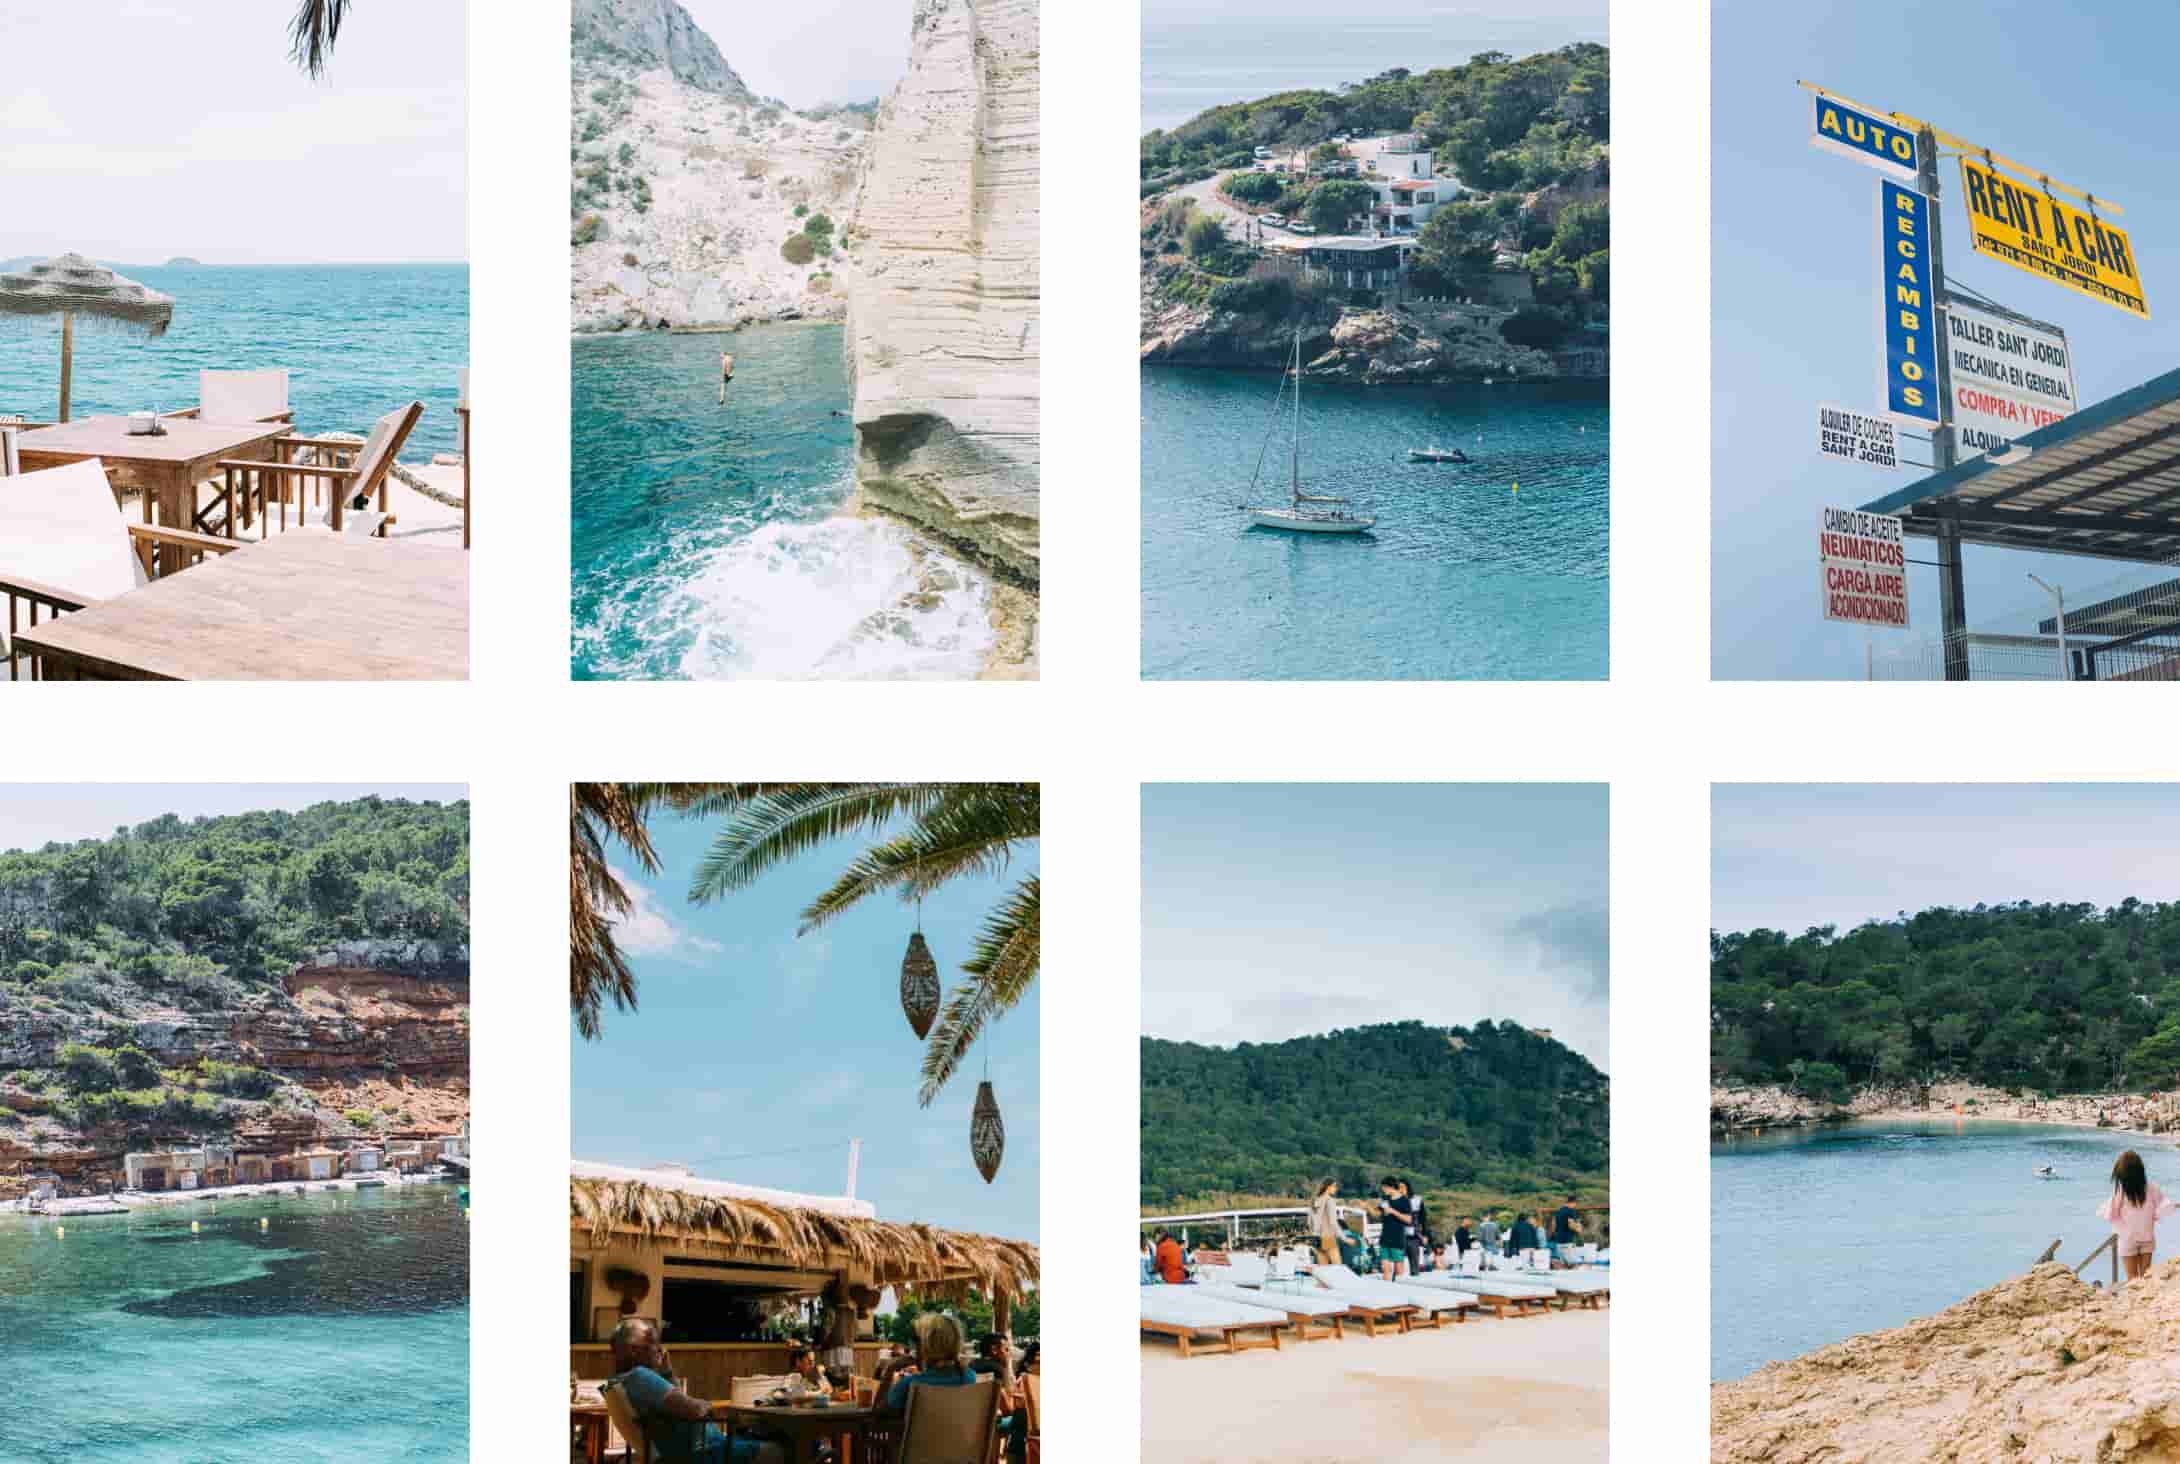 Things to do in Ibiza: The essentials while on holiday